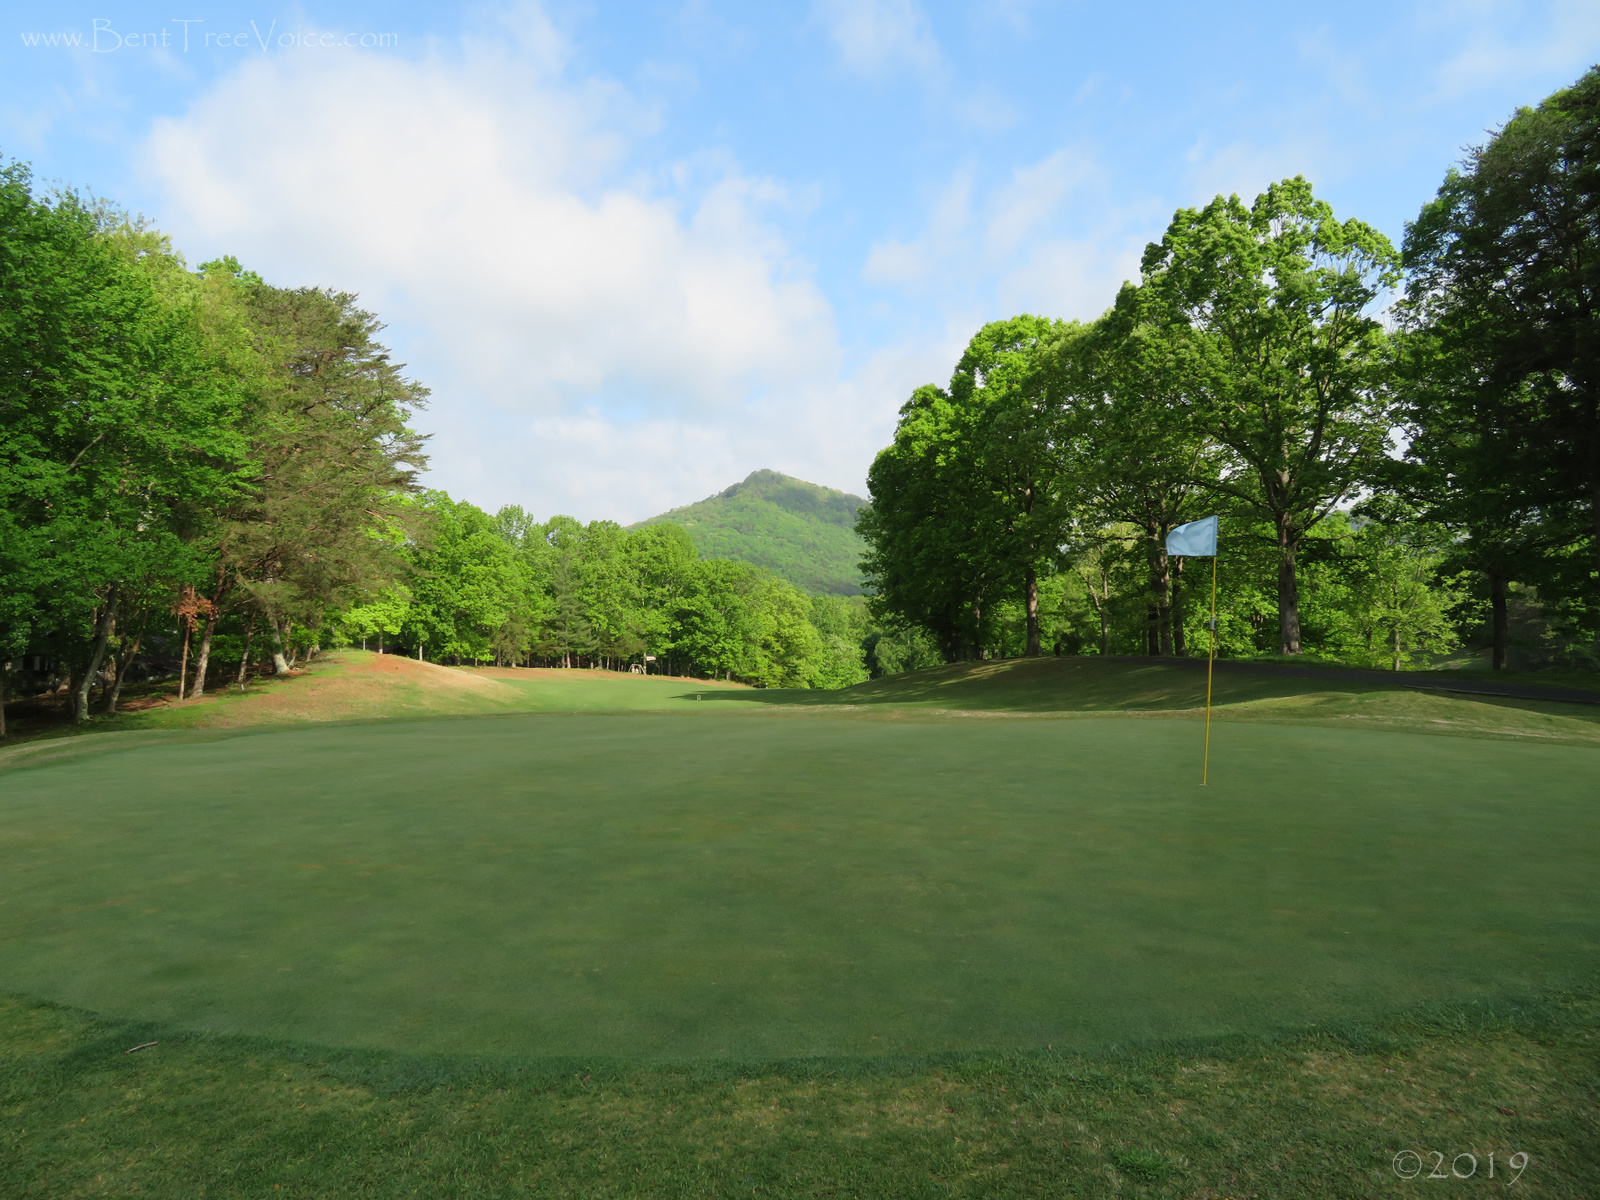 April 26, 2019 - Hole 1, Bent Tree Golf Course